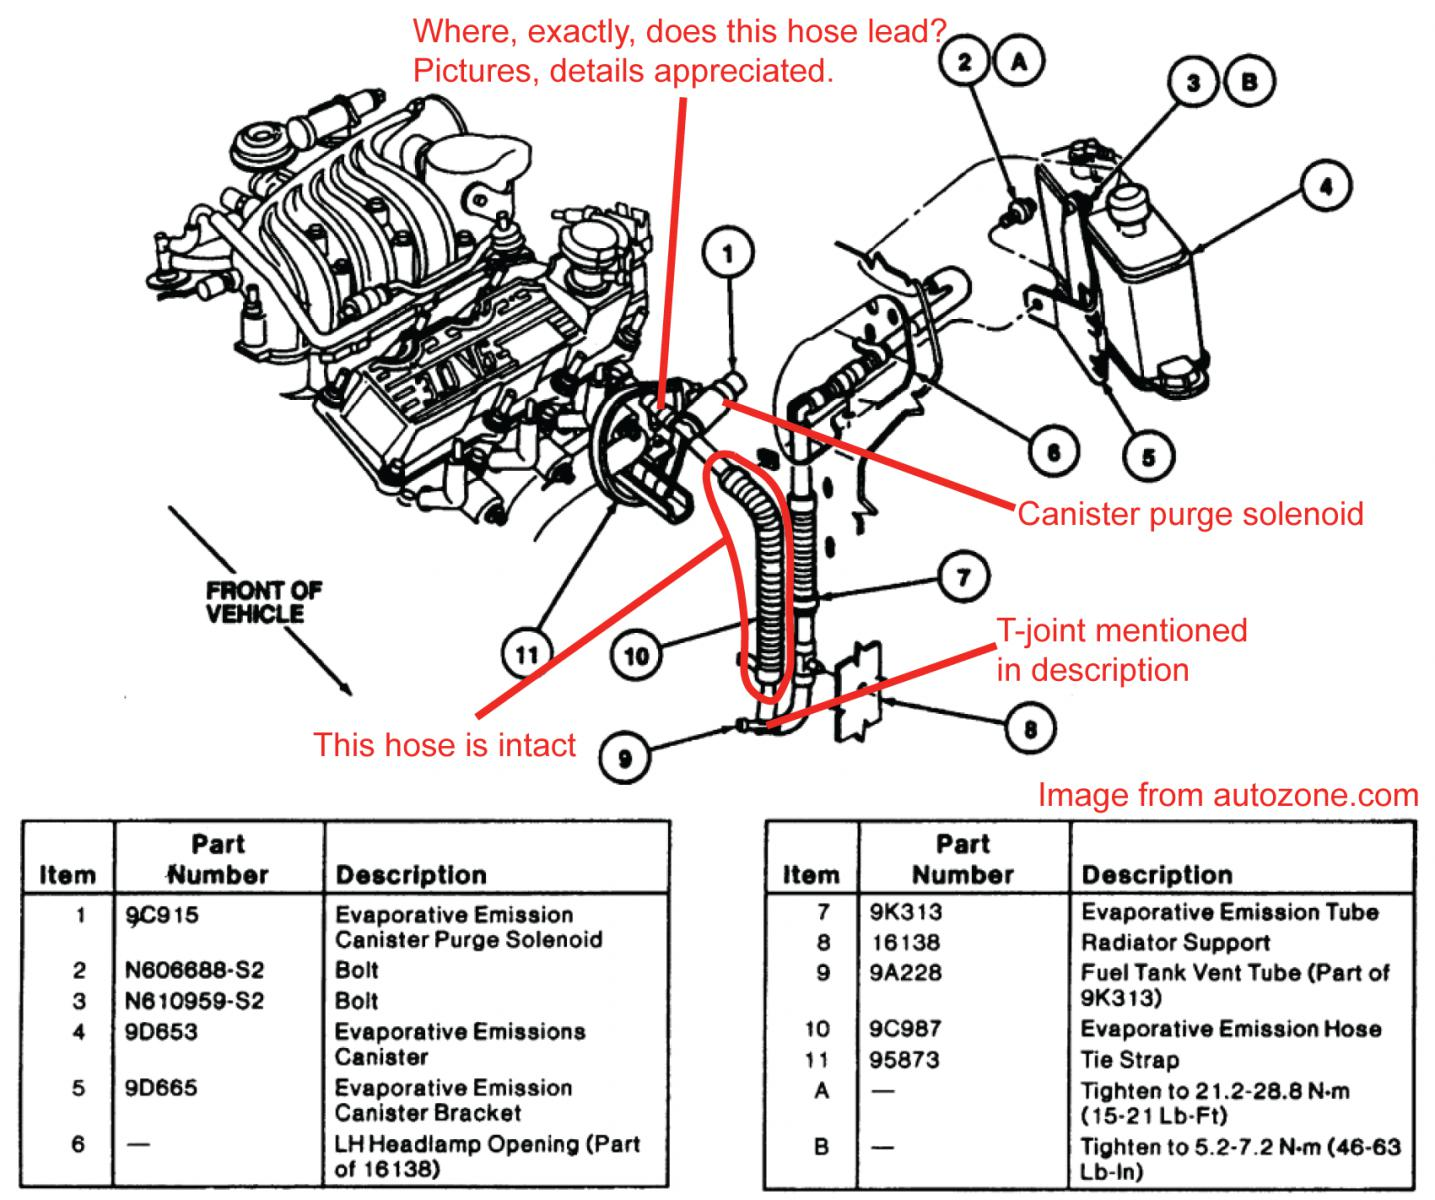 fuel vapor return tube connection - '93 taurus gl 3.0 l ... 2005 ford taurus fuel system diagram 2000 ford taurus fuel system wiring diagram